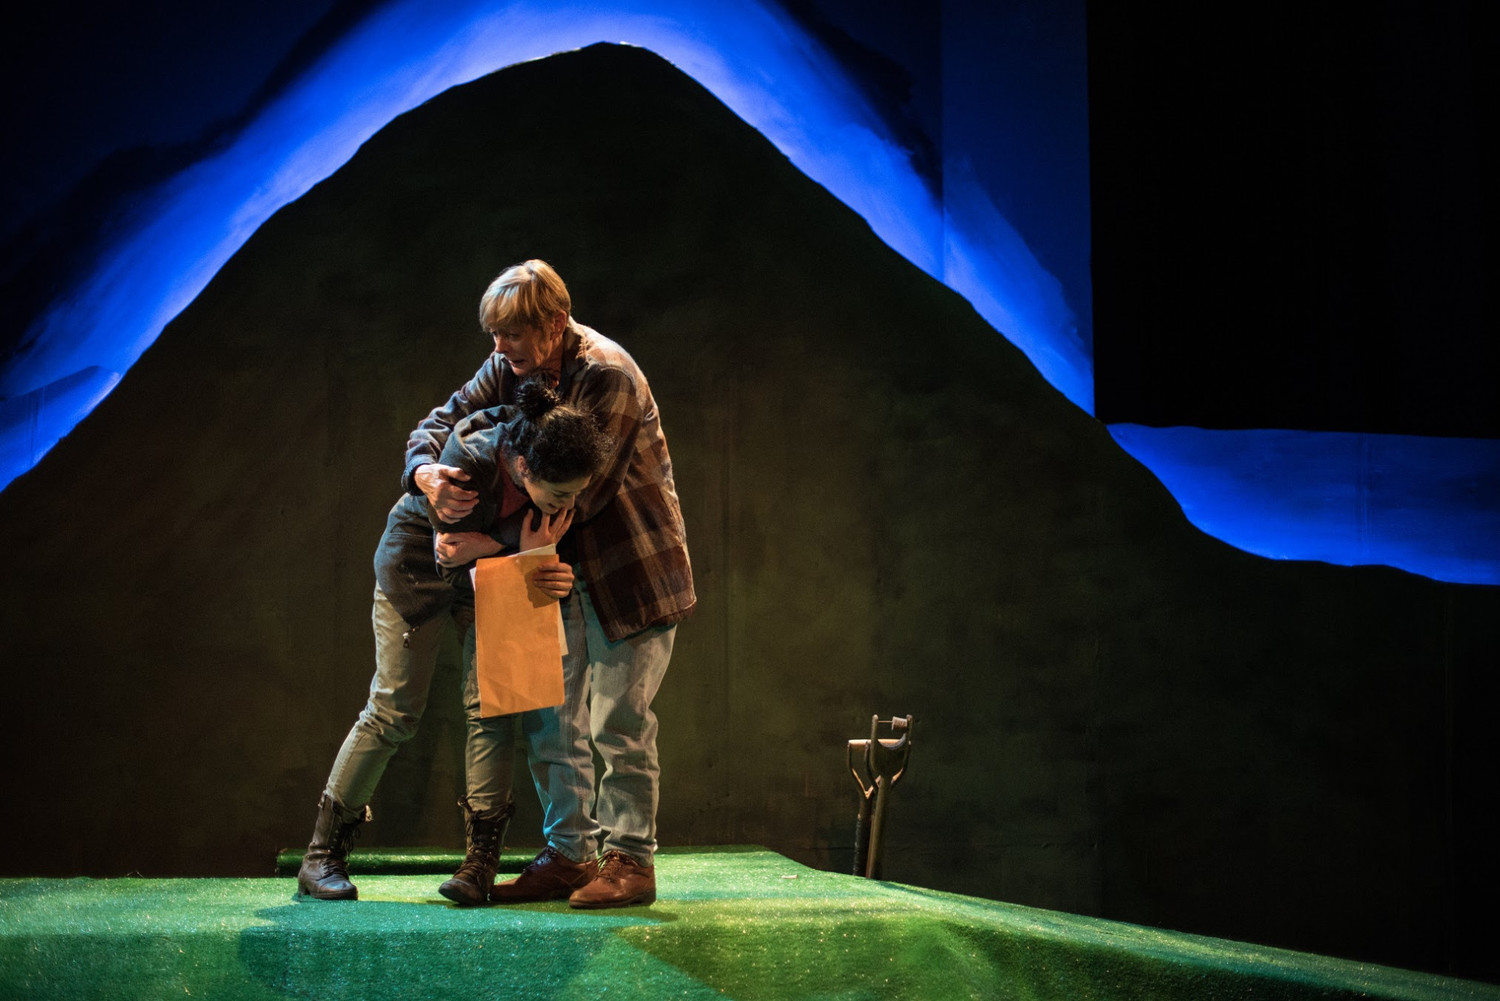 BWW Review: Humanity Shines in a Graveyard in DEAD AND BURIED at Dreamcatchers Repertory Theatre